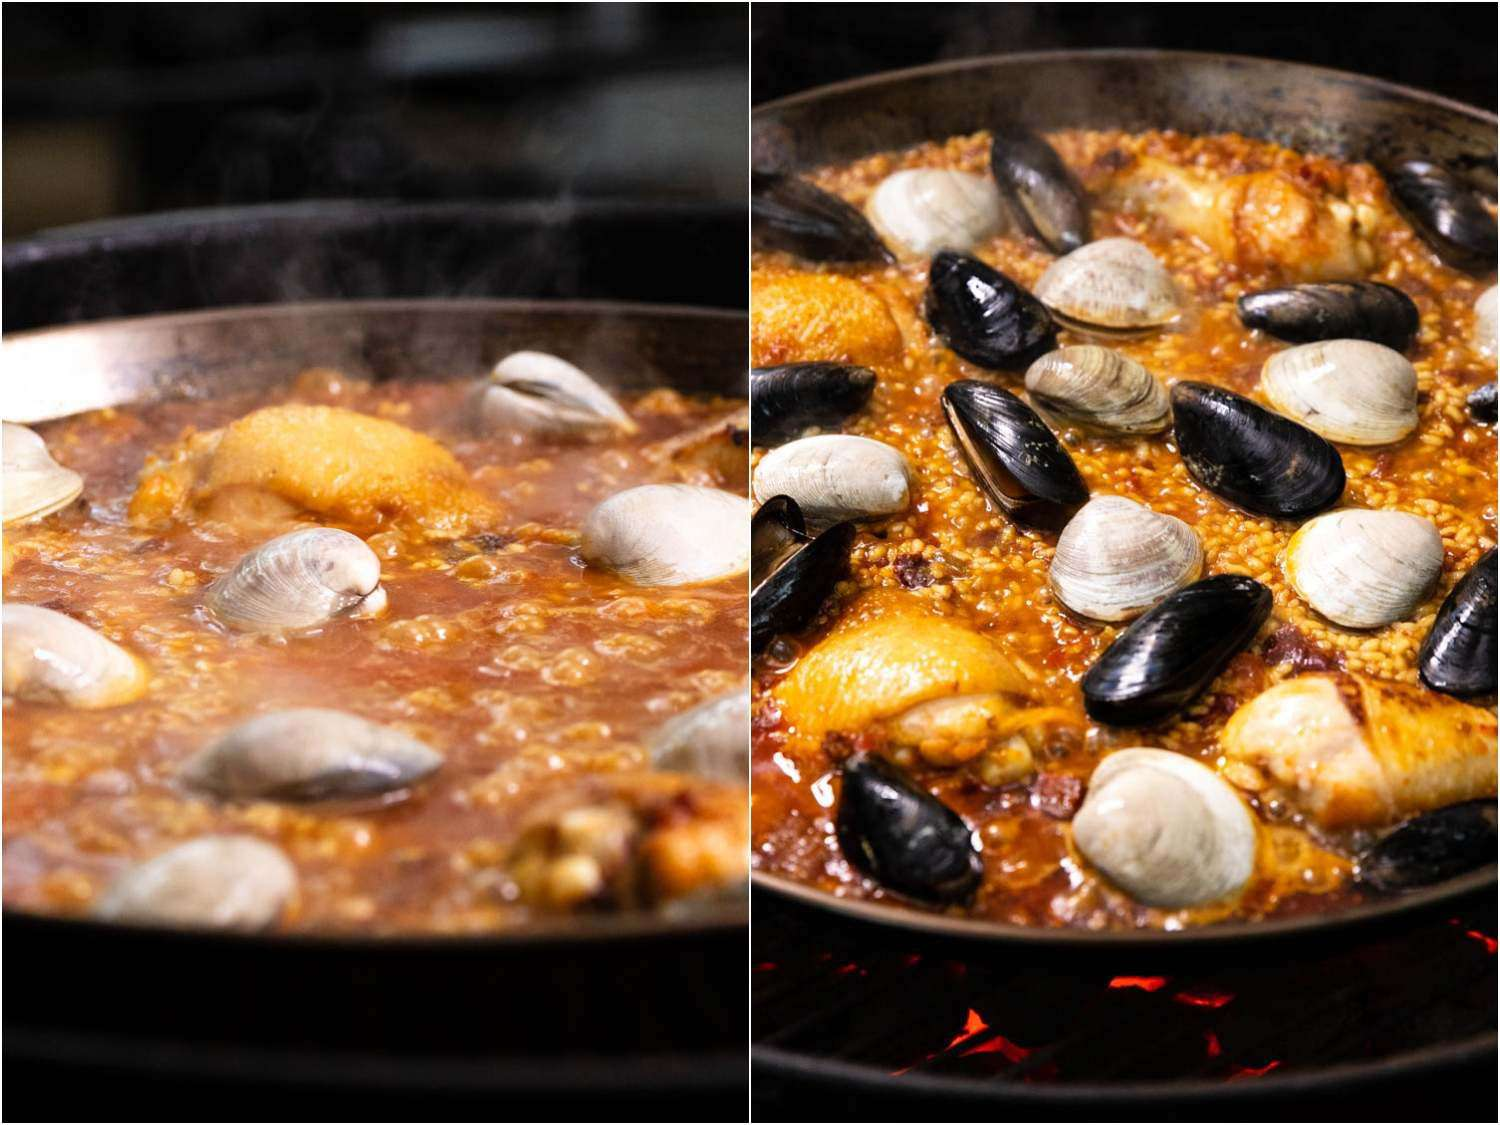 These two collaged photos show chicken, clams, and mussels being nestled together in a large paella.